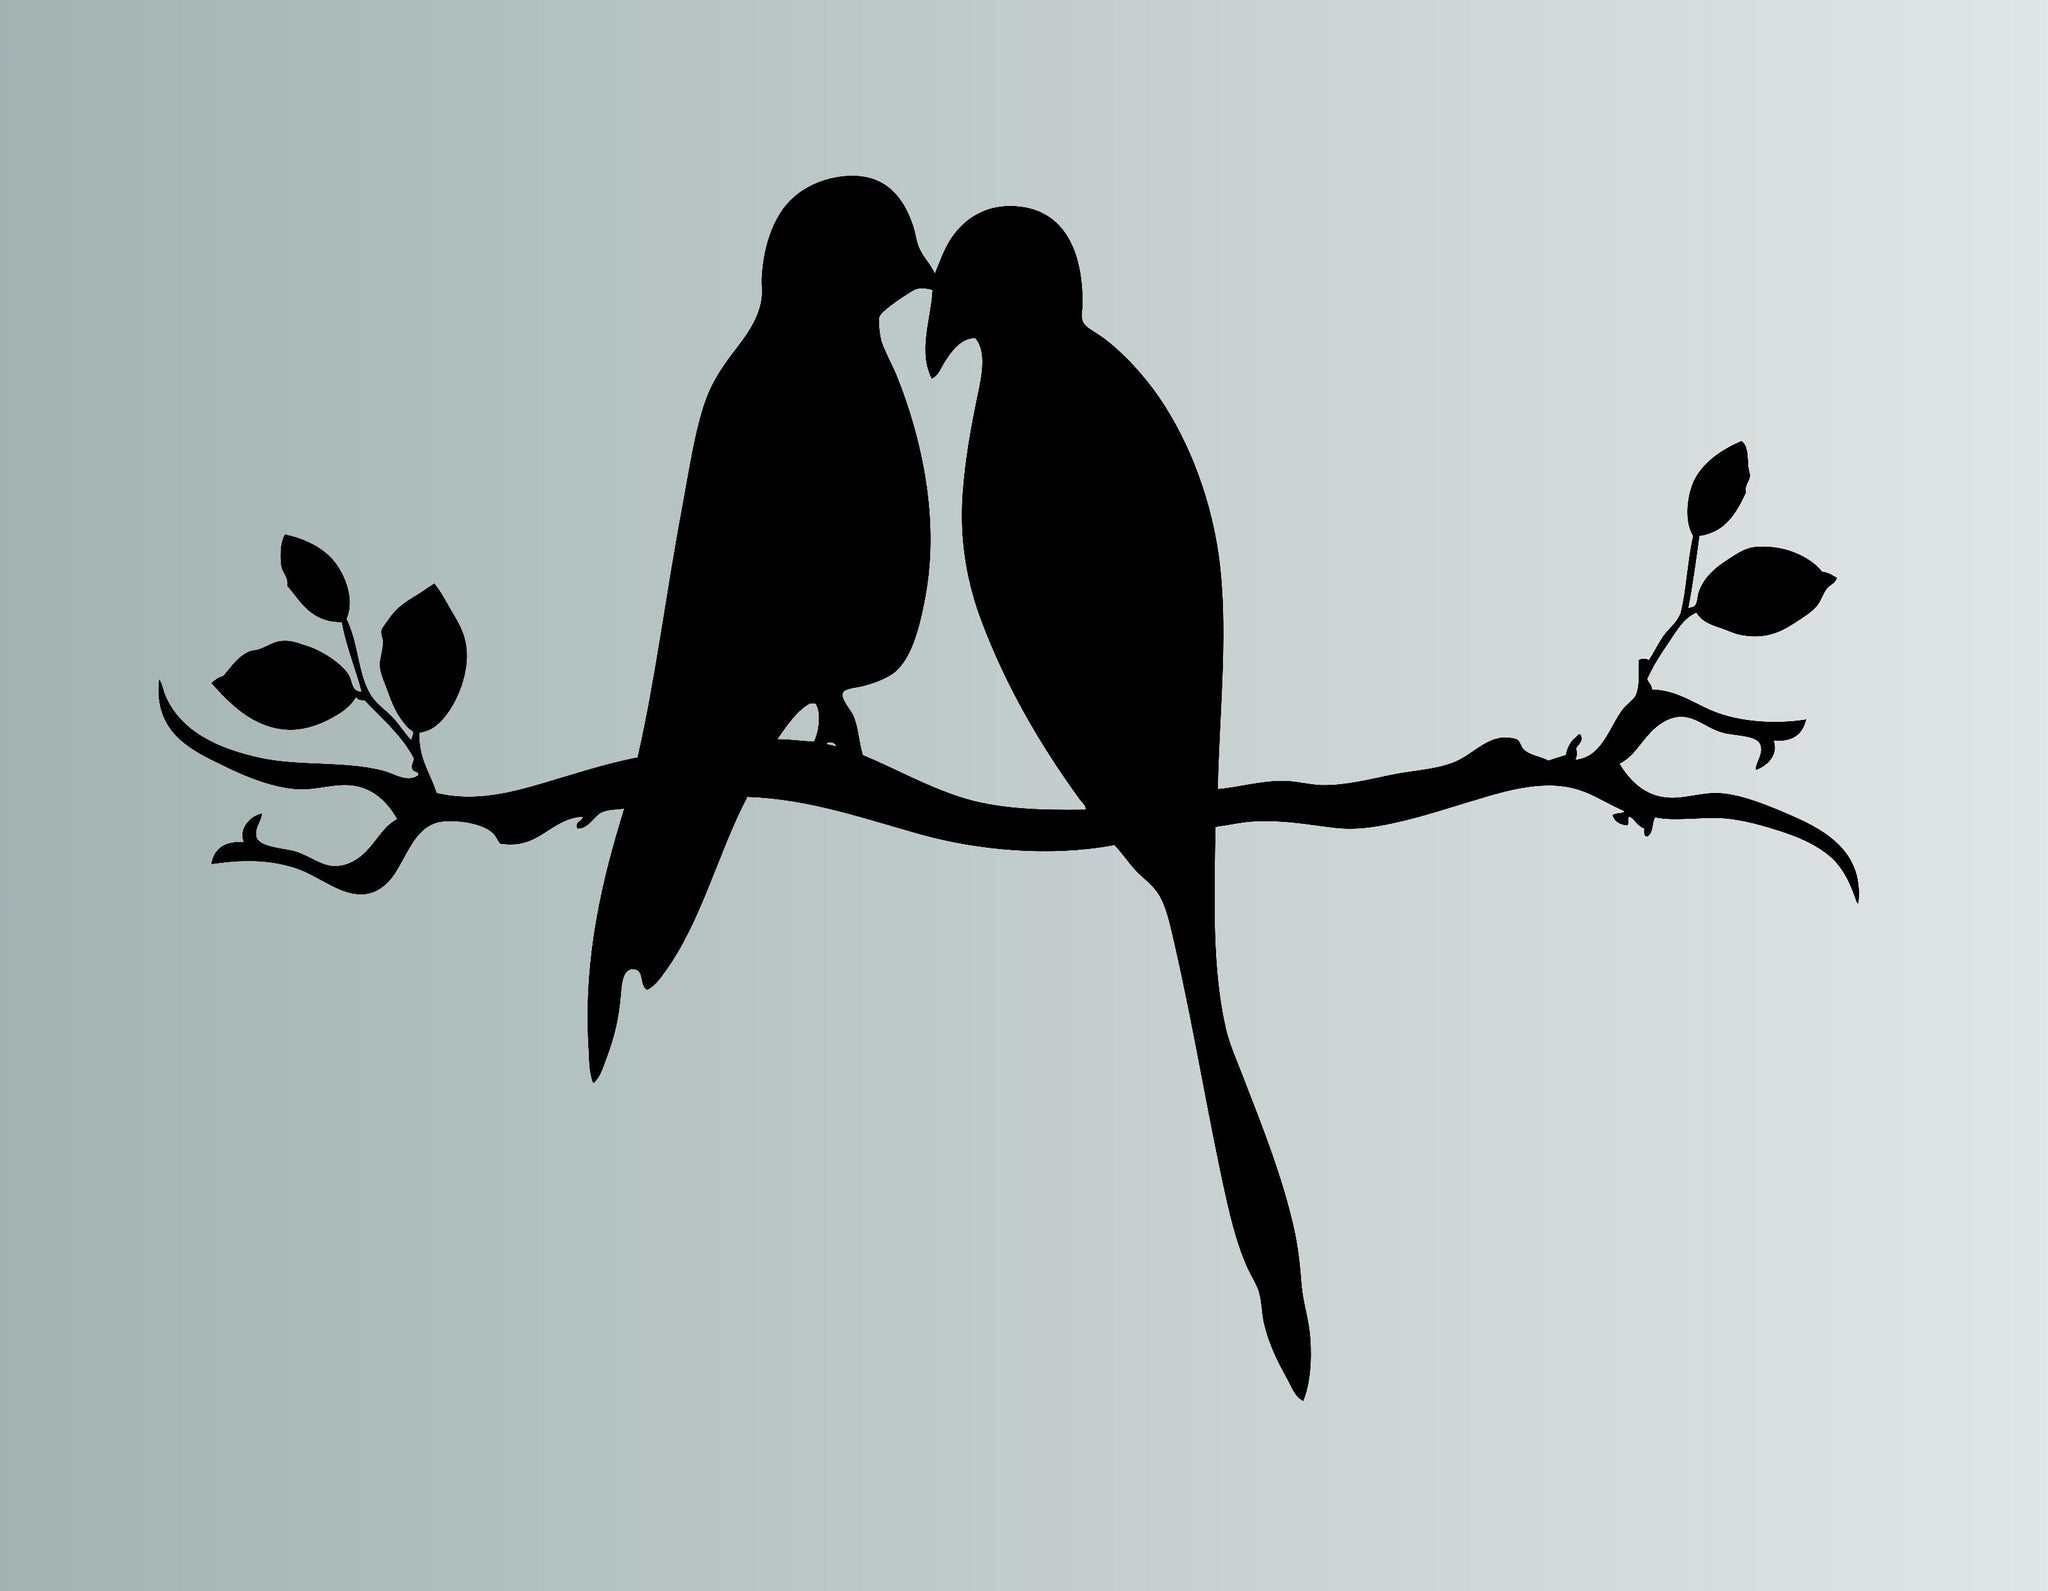 Love Birds On A Branch Die Cut Vinyl Wall Decal